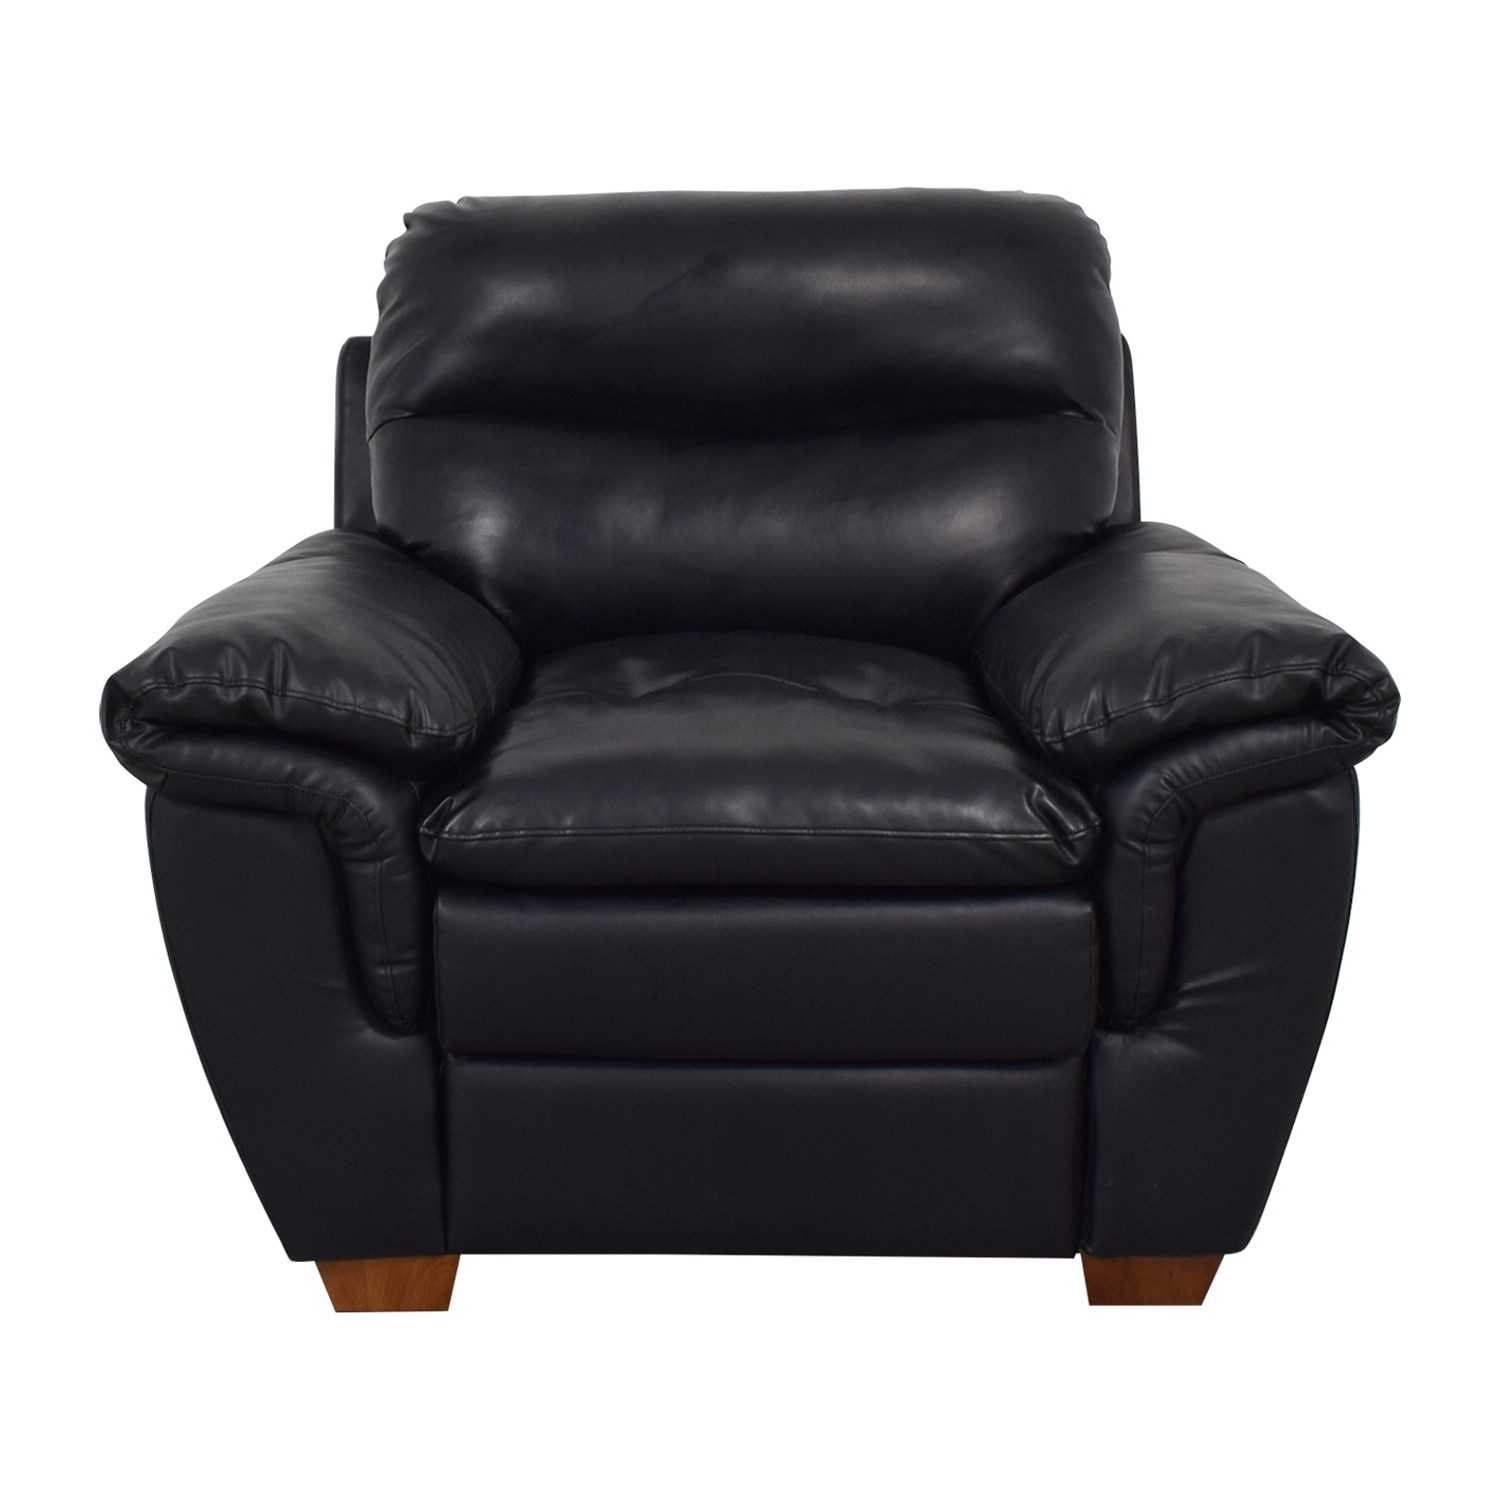 Jennifer Furniture Jennifer Furniture Wilton Black Accent Chair